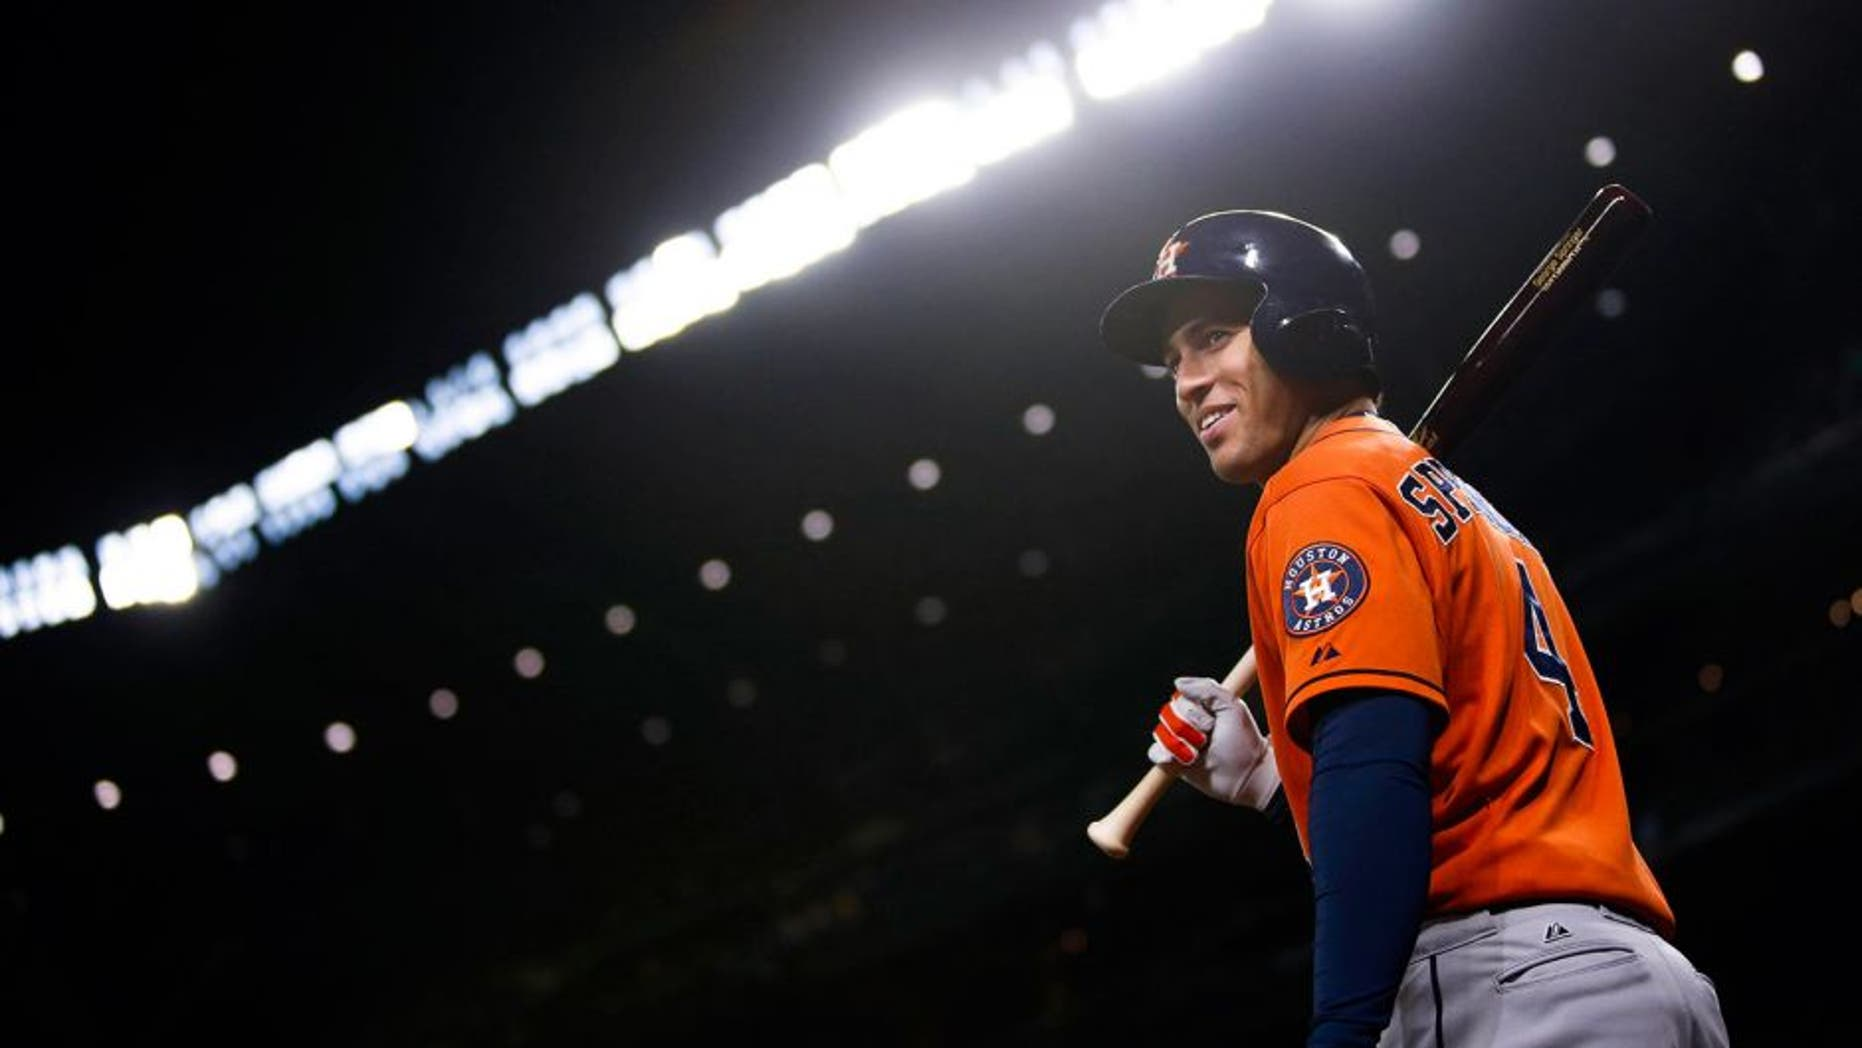 Sep 28, 2015; Seattle, WA, USA; Houston Astros right fielder George Springer (4) stands in the on-deck circle during the fifth inning against the Seattle Mariners at Safeco Field. Mandatory Credit: Joe Nicholson-USA TODAY Sports